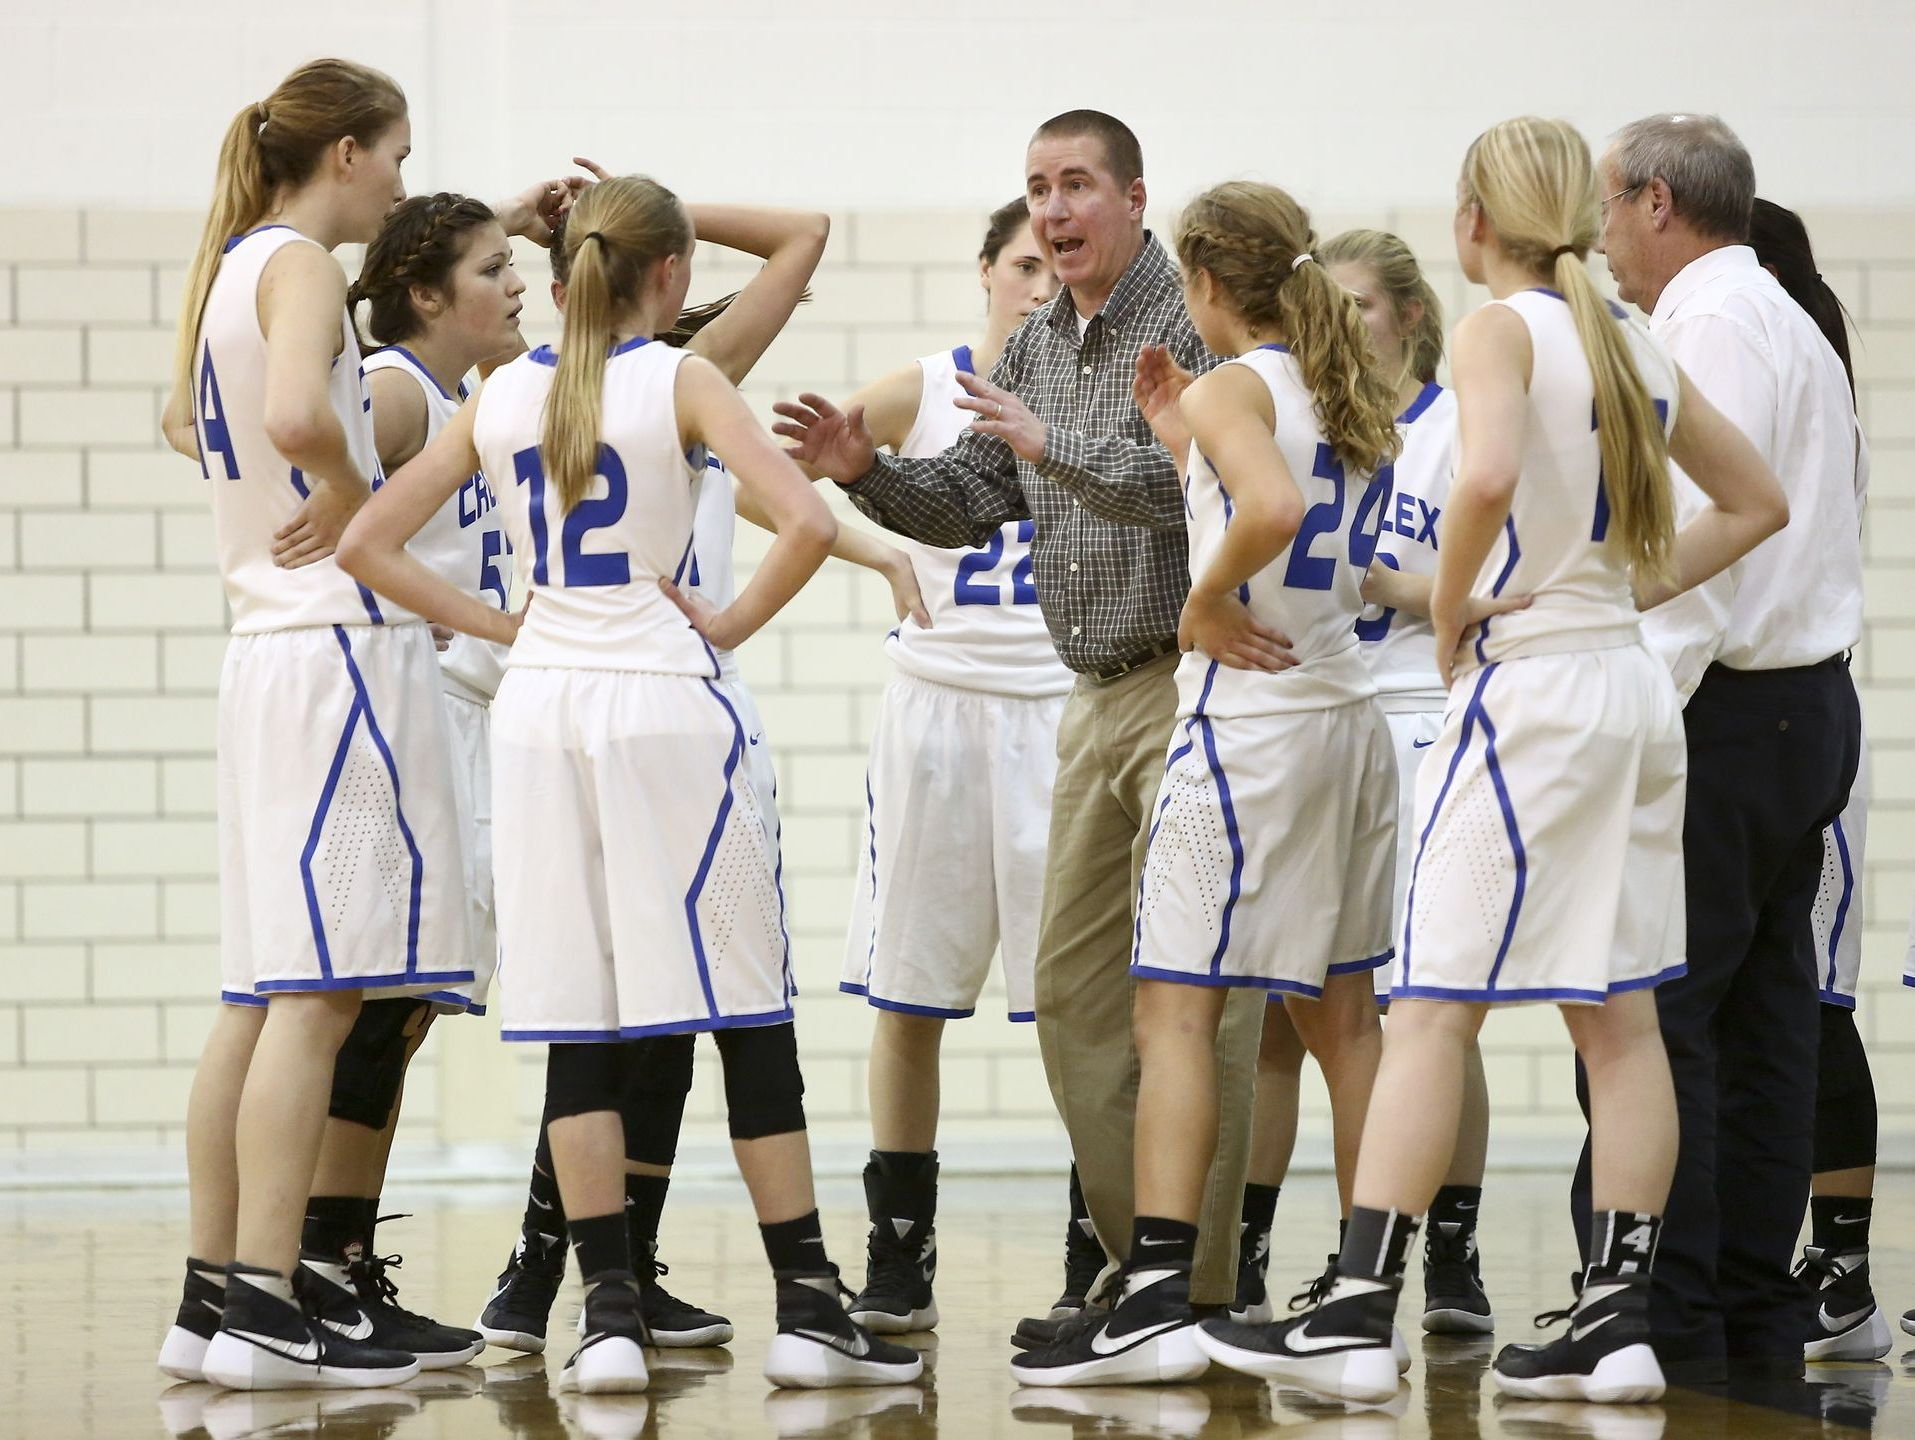 Cros-Lex coach Darren Bongard talks with players in a huddle during the Holiday Girls Basketball Tournament Tuesday, Dec. 22, 2015 at Port Huron Northern High School.